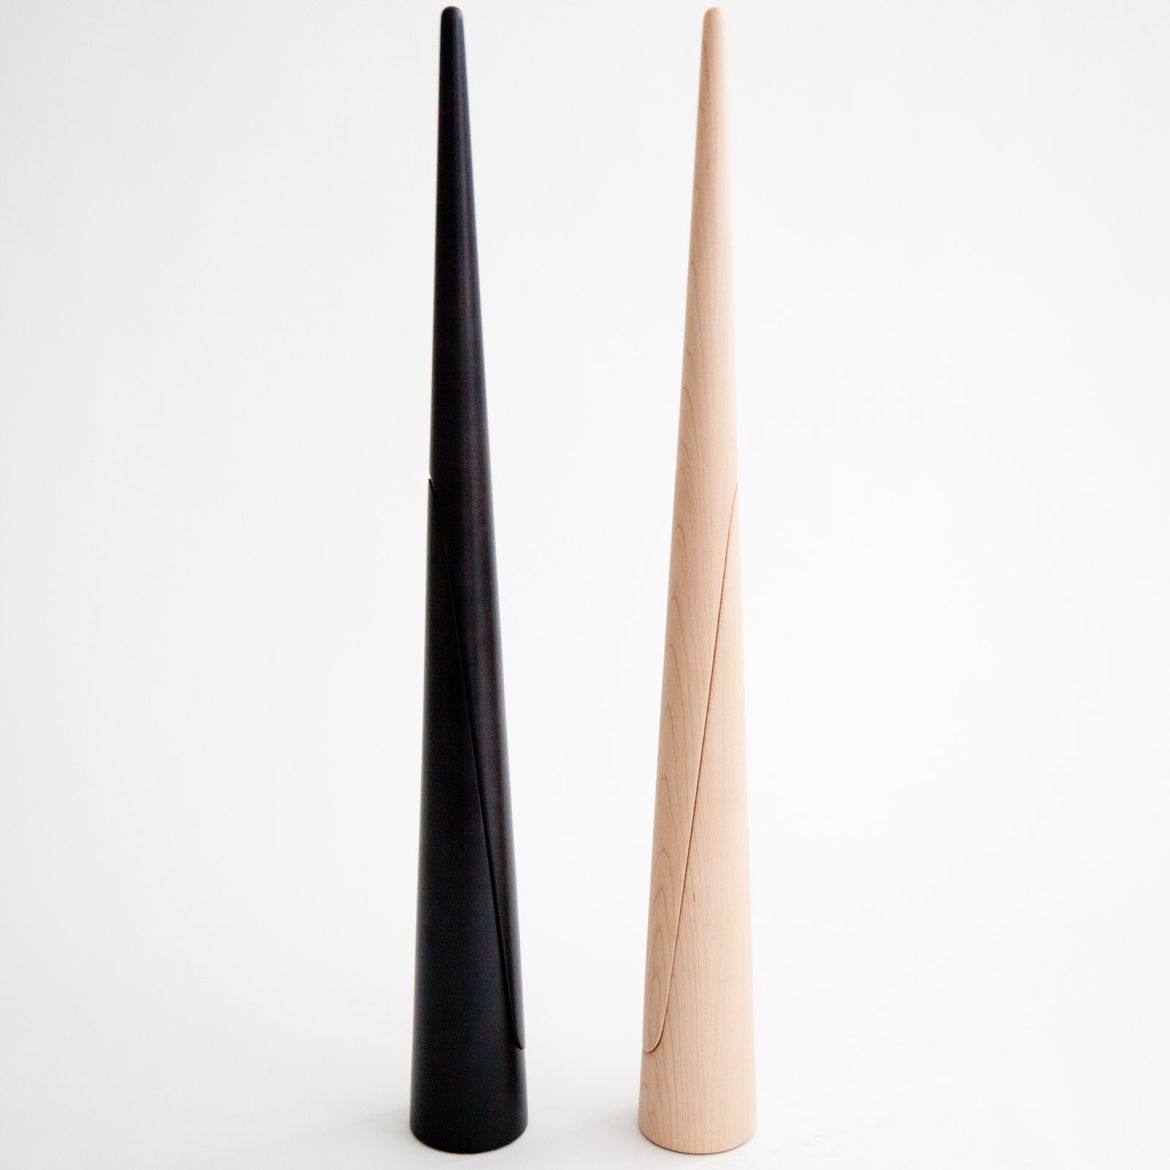 """<b><a href=""""http://store.mjolk.ca/index.php?product=Shoe+horn&shop=1&search=Shoe%20horn%20by%20Nendo"""">12. Shoehorn by Nendo.</a></b> """"When we look for products, we have very strict criteria. We try to find our customers the best possible product with litt"""